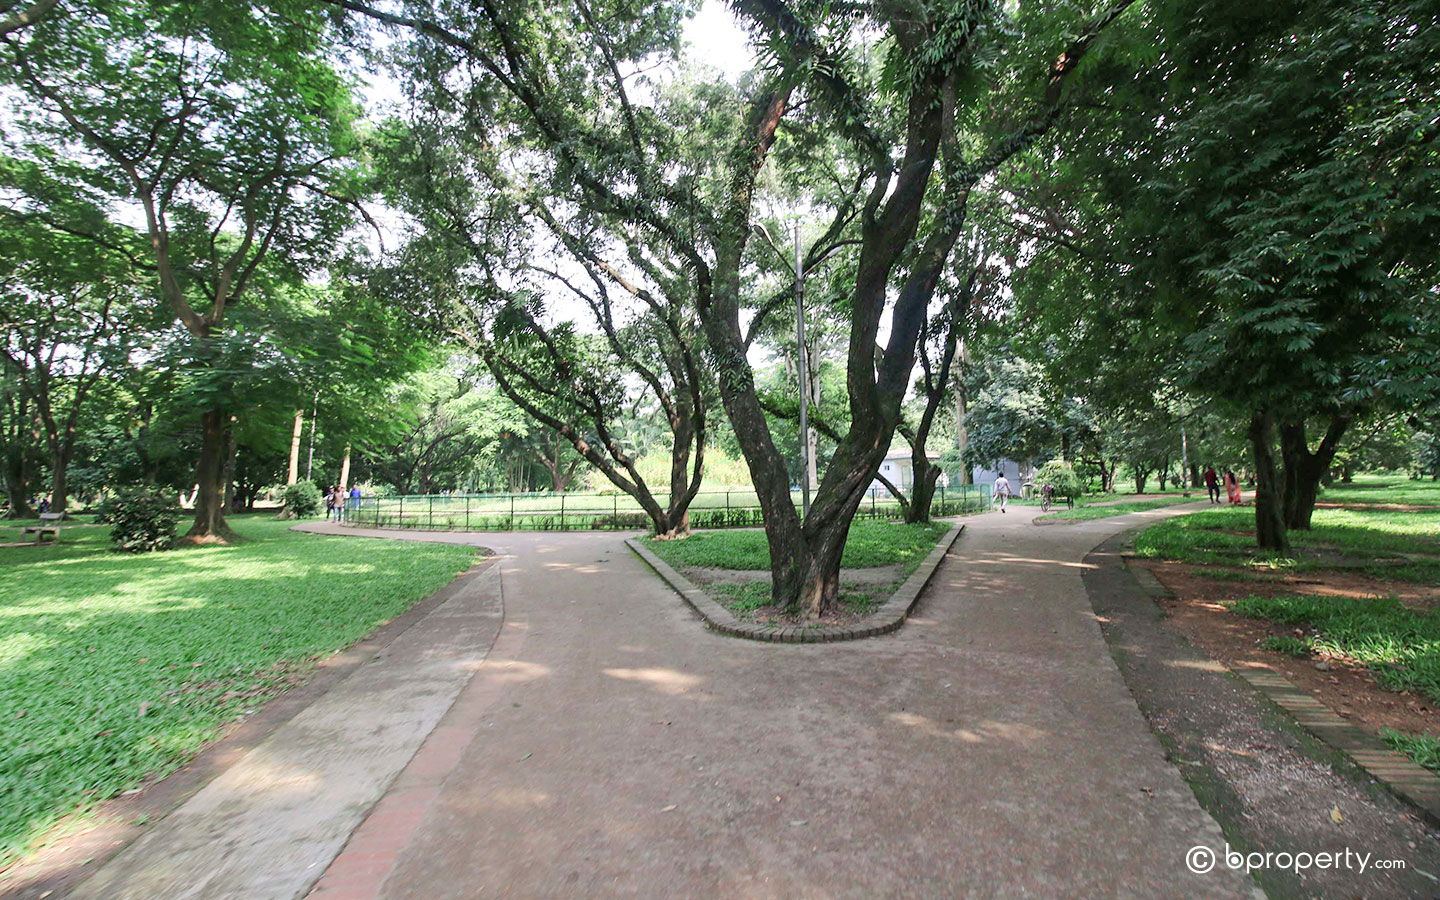 Ramna Park is one of the most famous parks in Dhaka